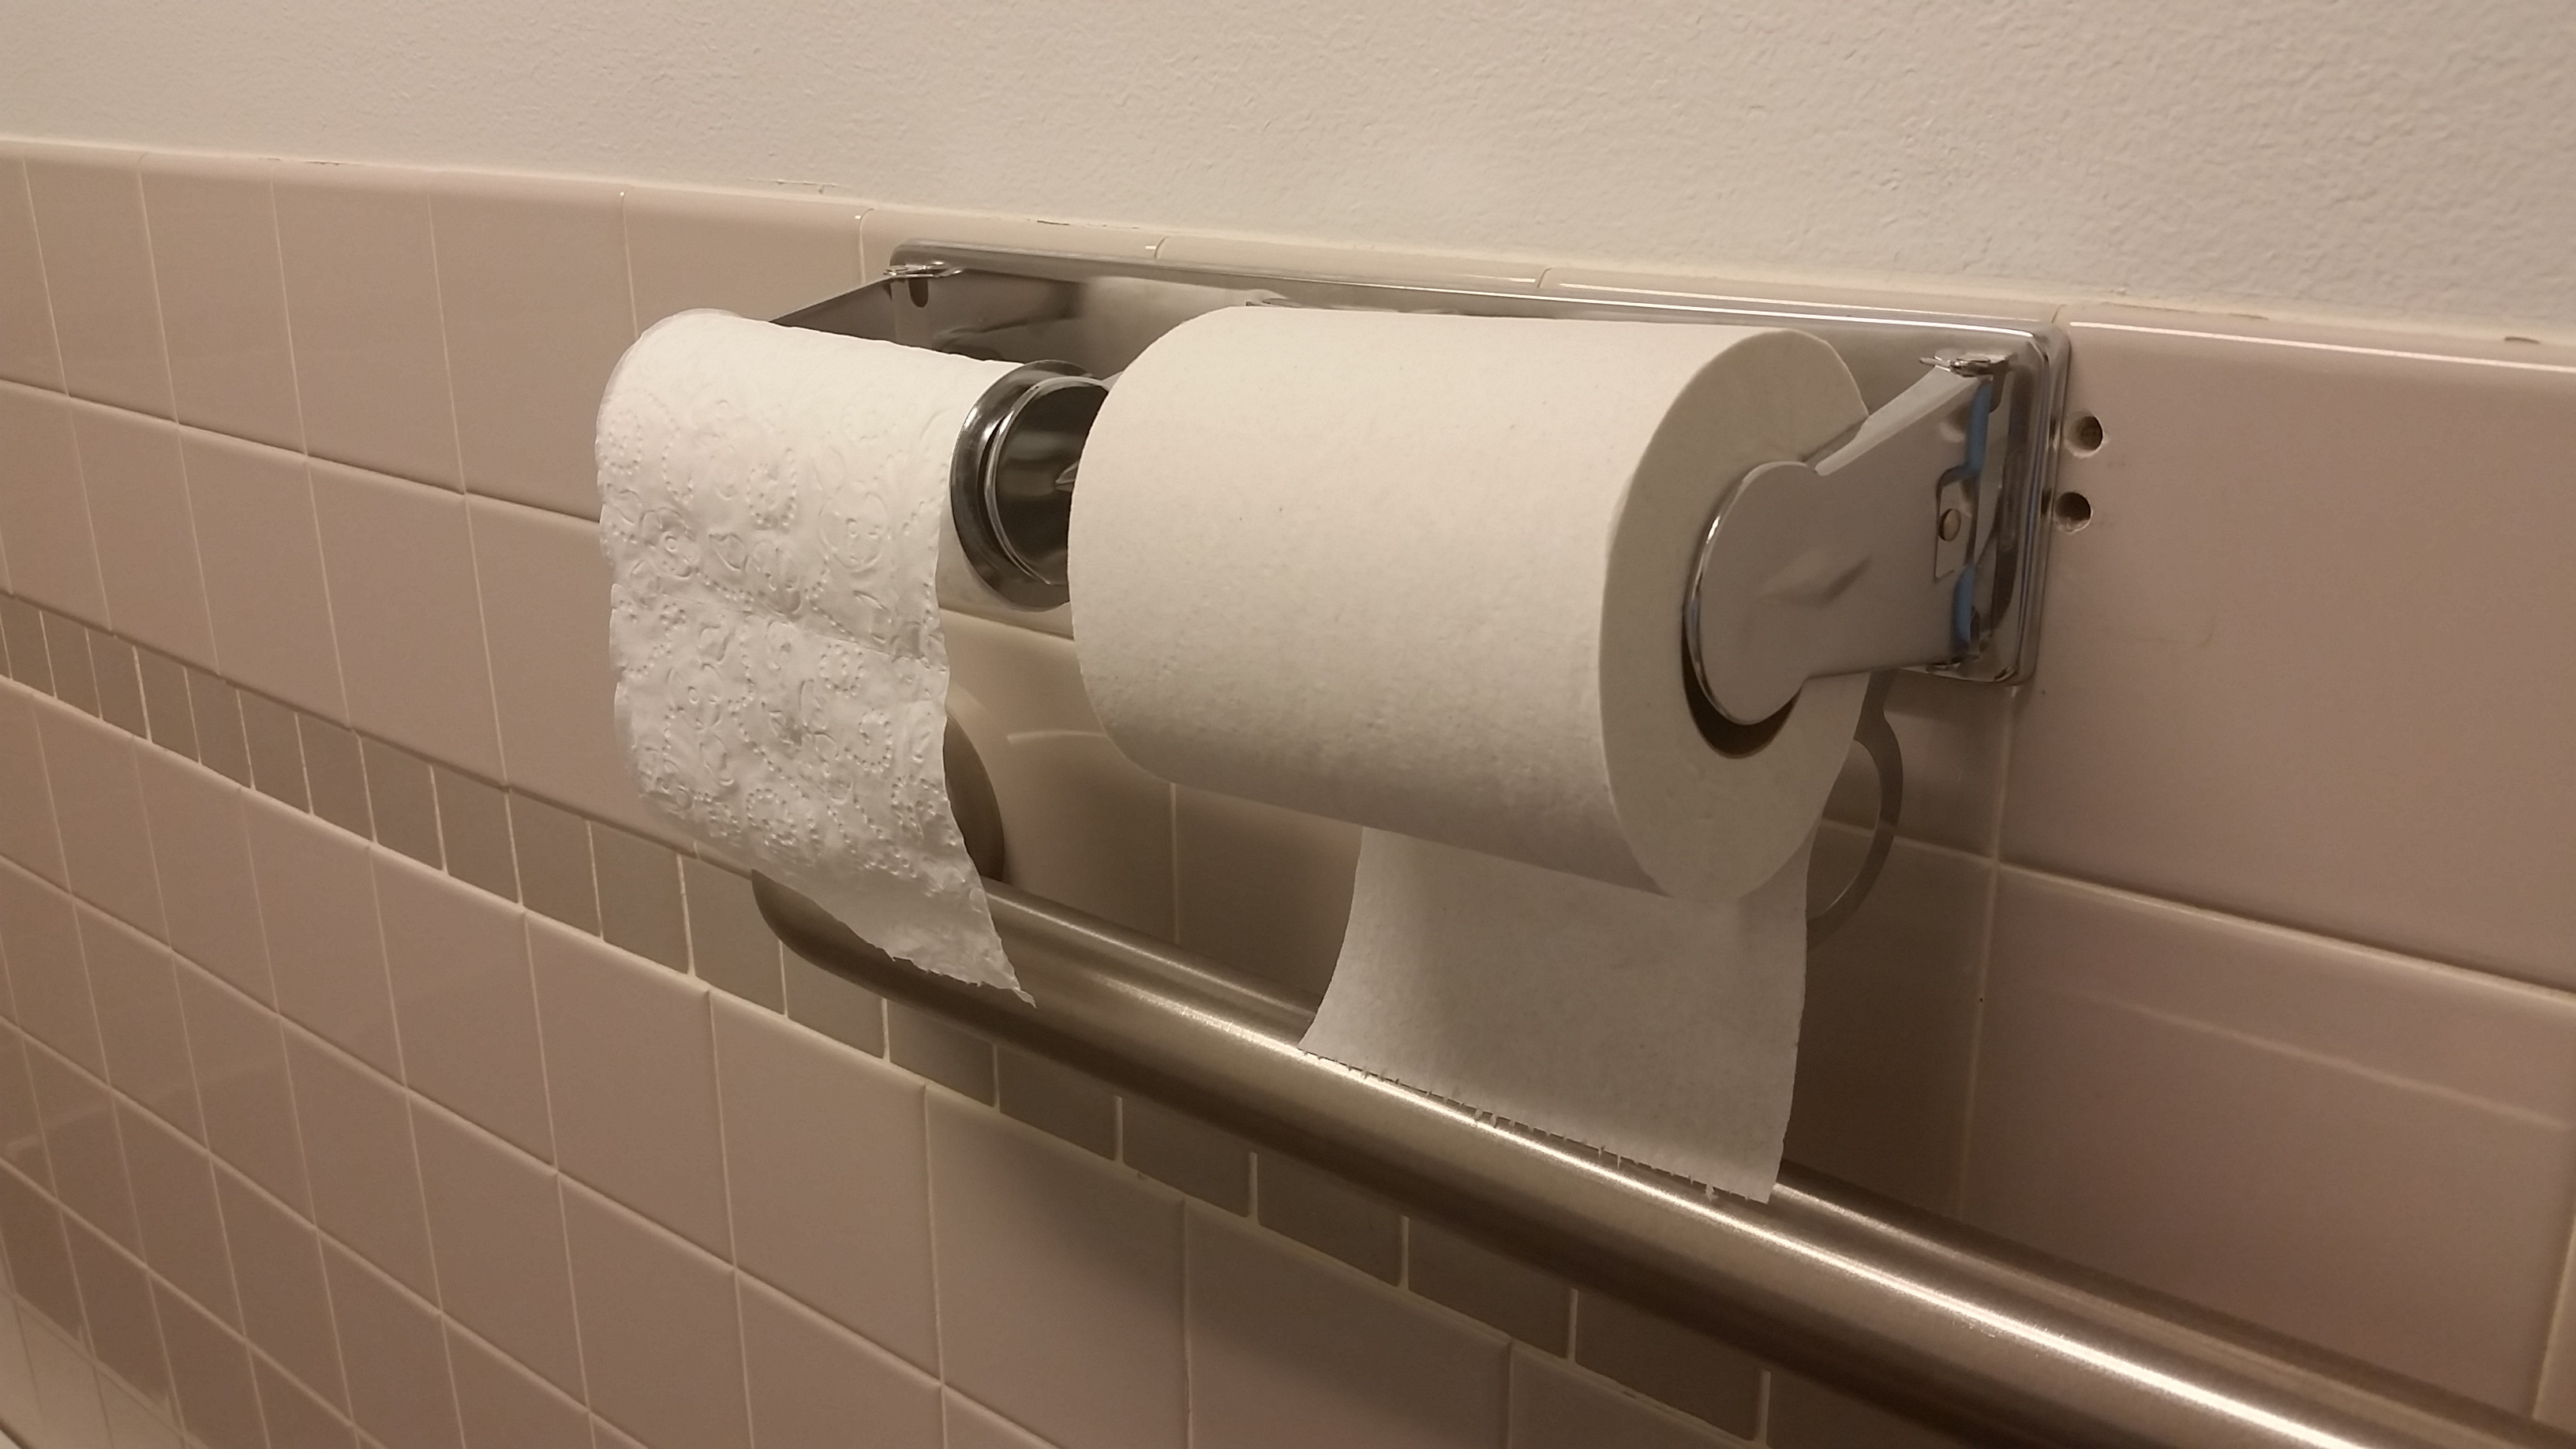 It has been determined the people prefer over vs under when it comes to toilet paper.